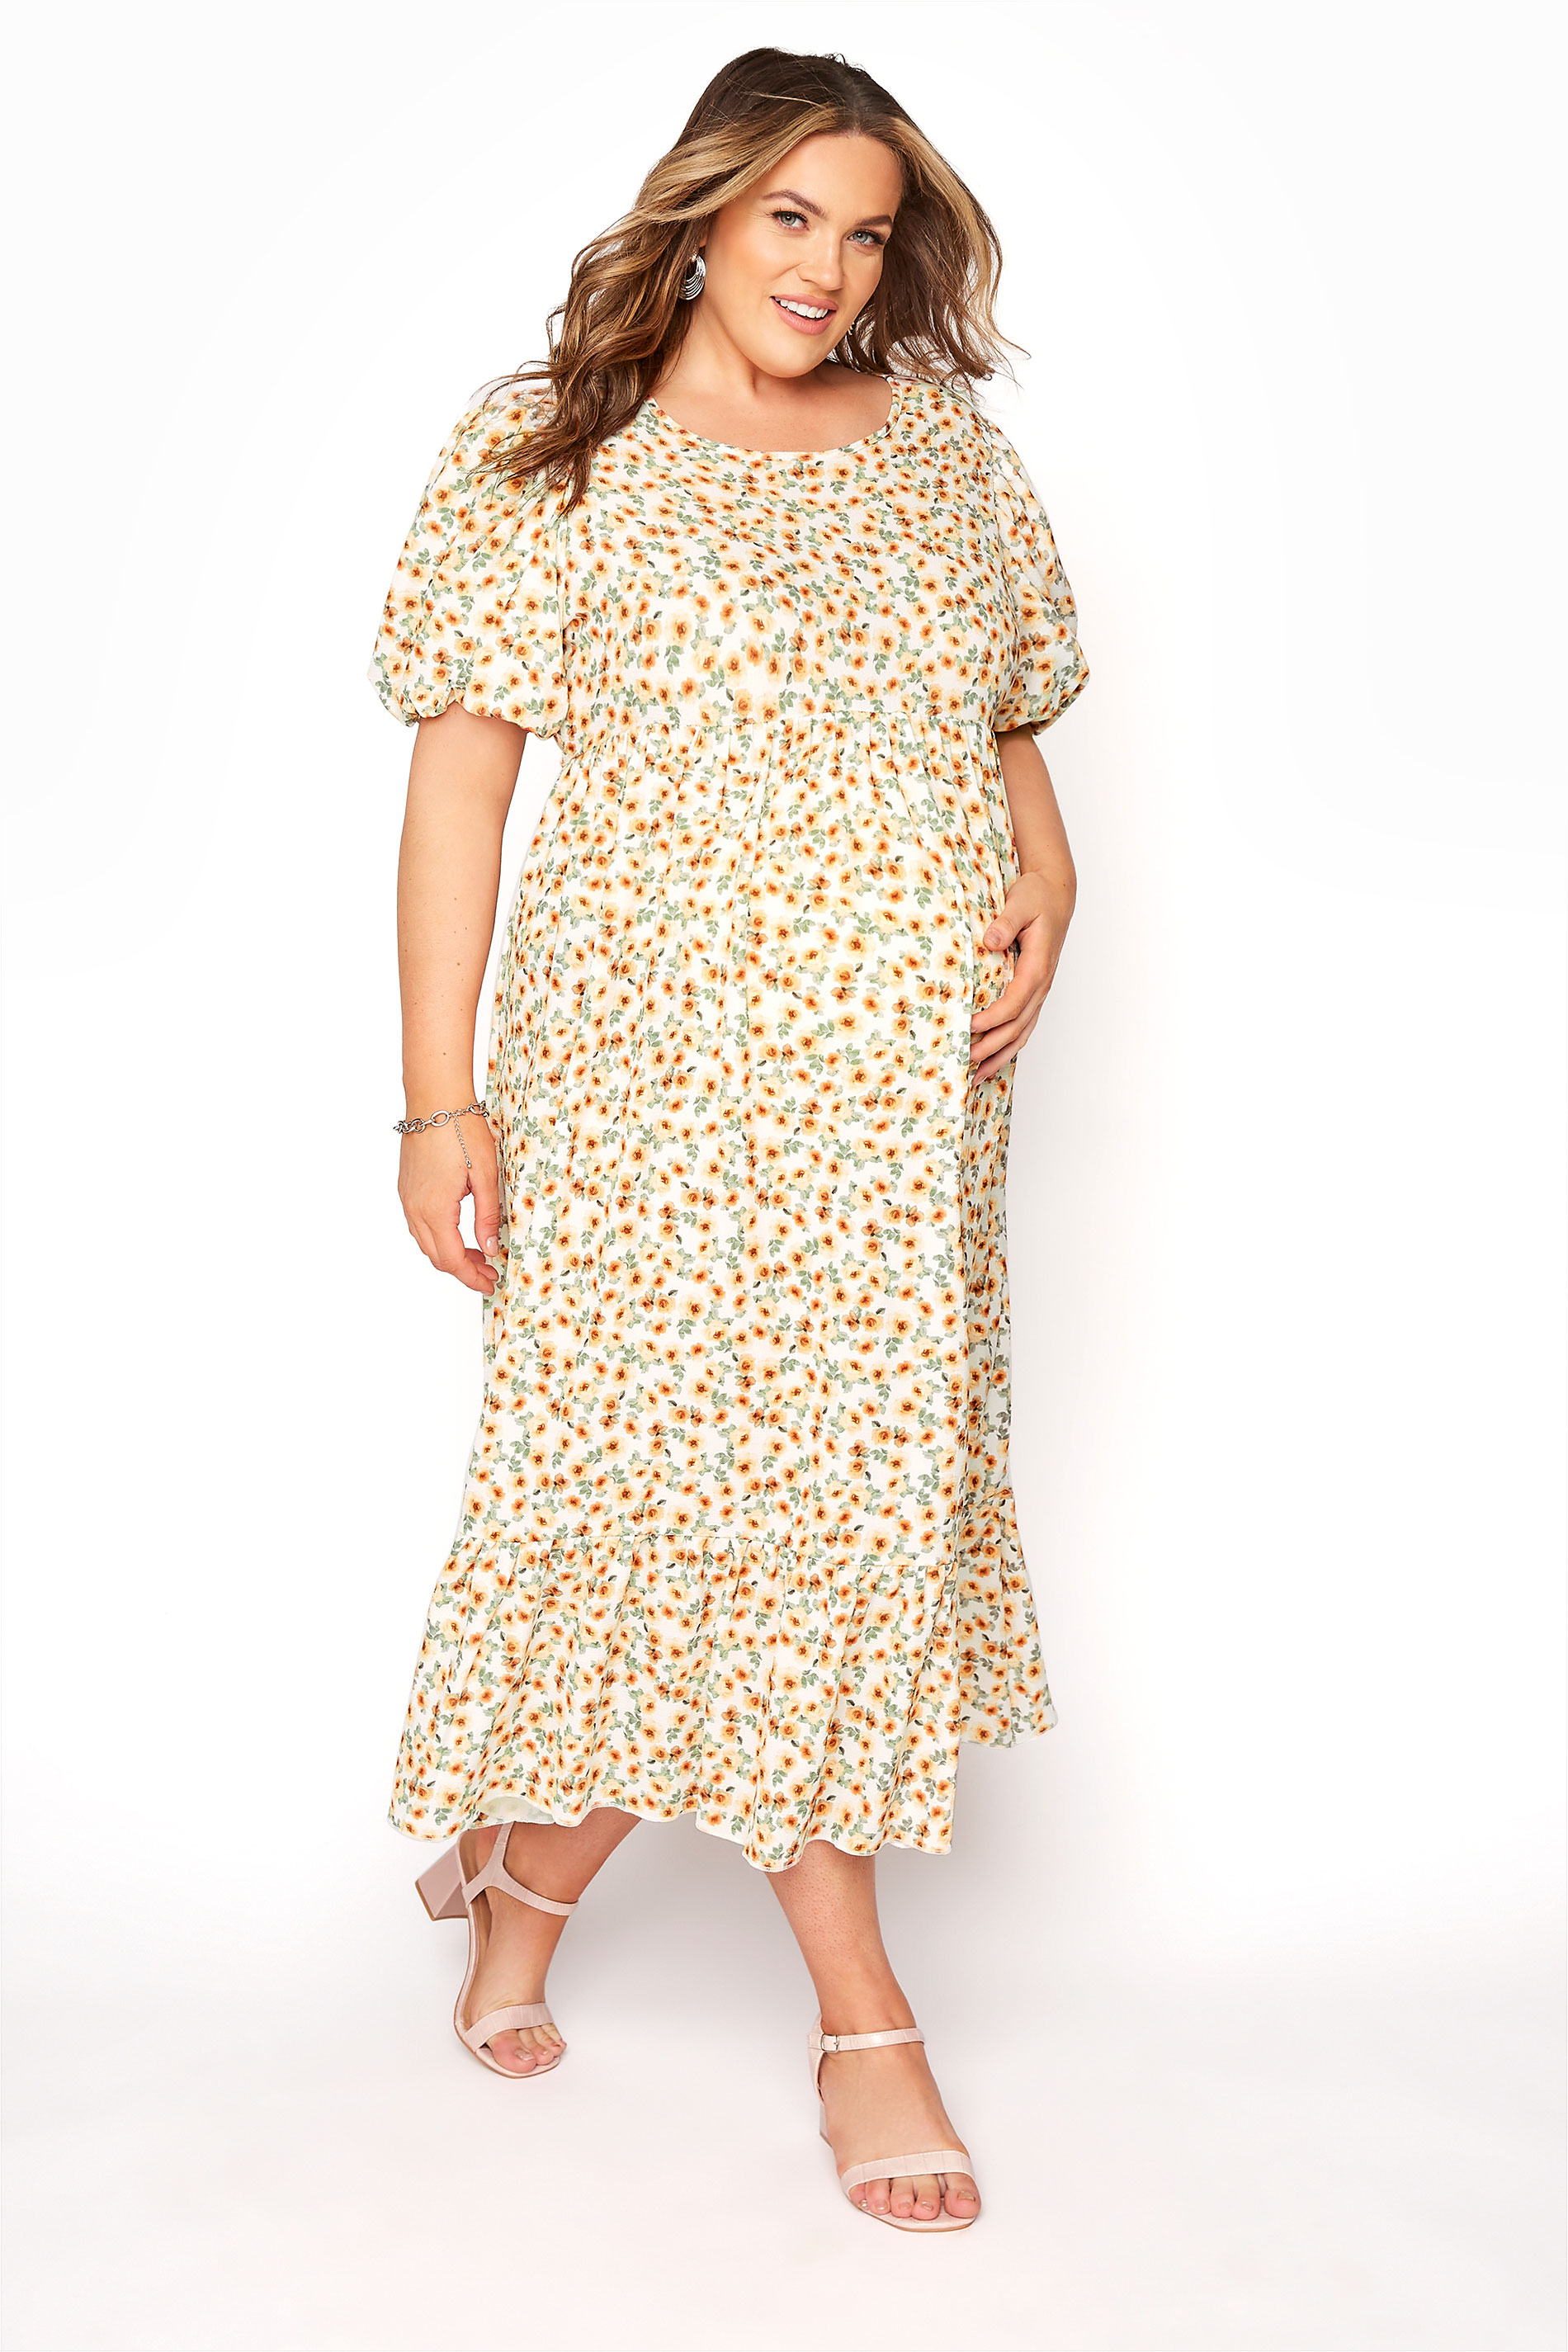 BUMP IT UP MATERNITY Ivory Floral Puff Sleeve Smock Dress